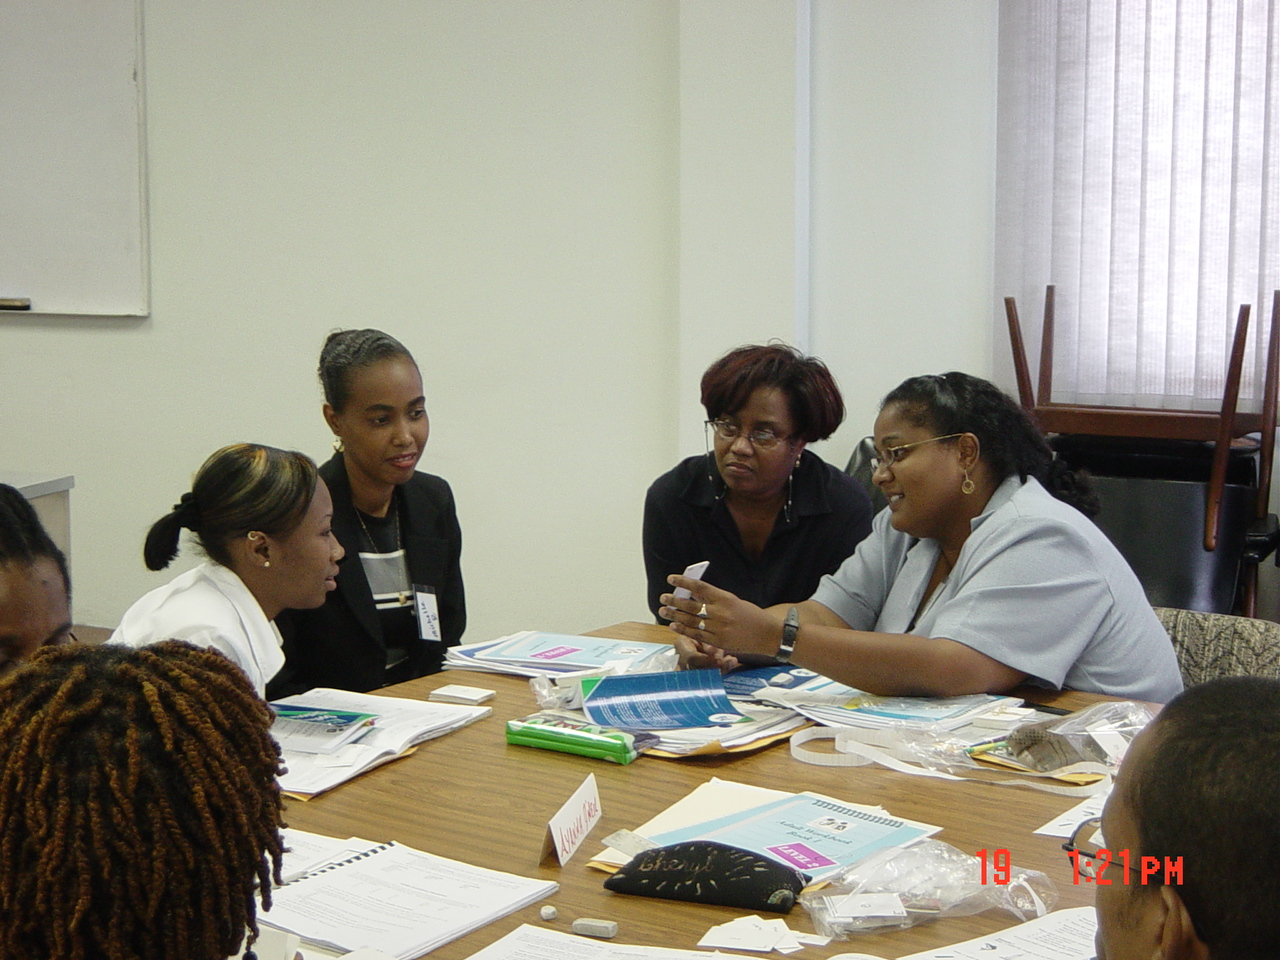 Adult literacy classes are conducted in more than 50 communities across  Trinidad by ALTA-trained volunteers. Find out more here.